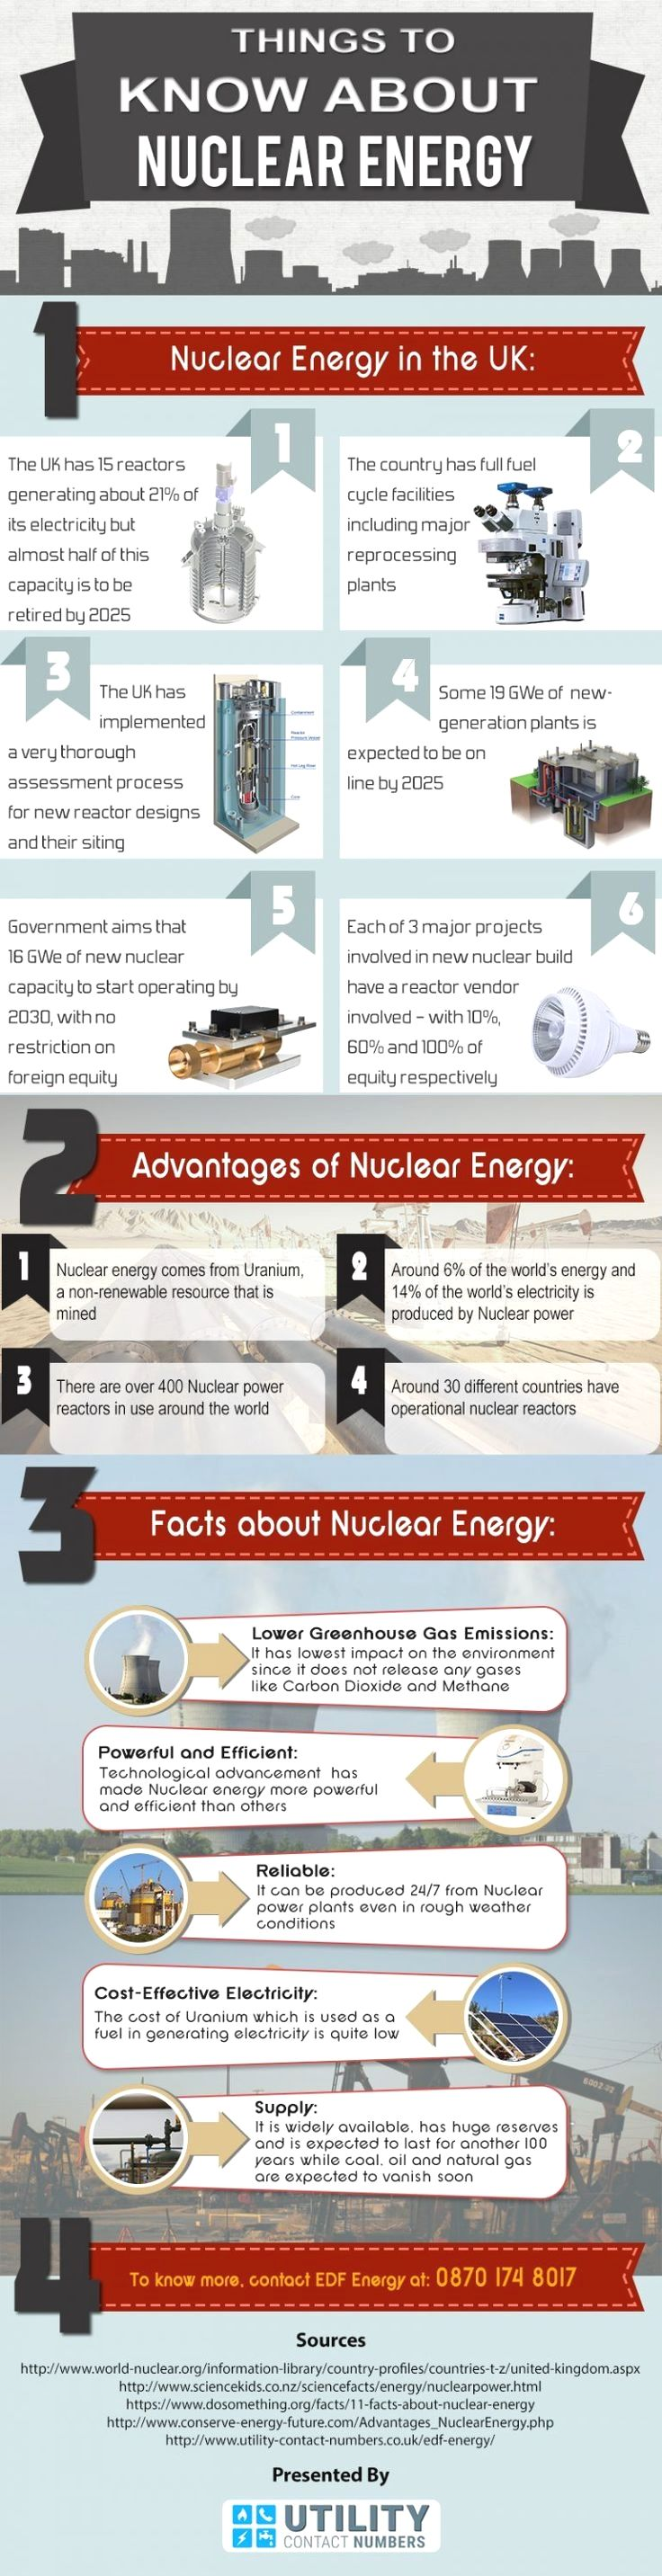 27 Best Nuclear Power Images On Pinterest Electricity Generation Chemwiki Click Visit Link For More Details